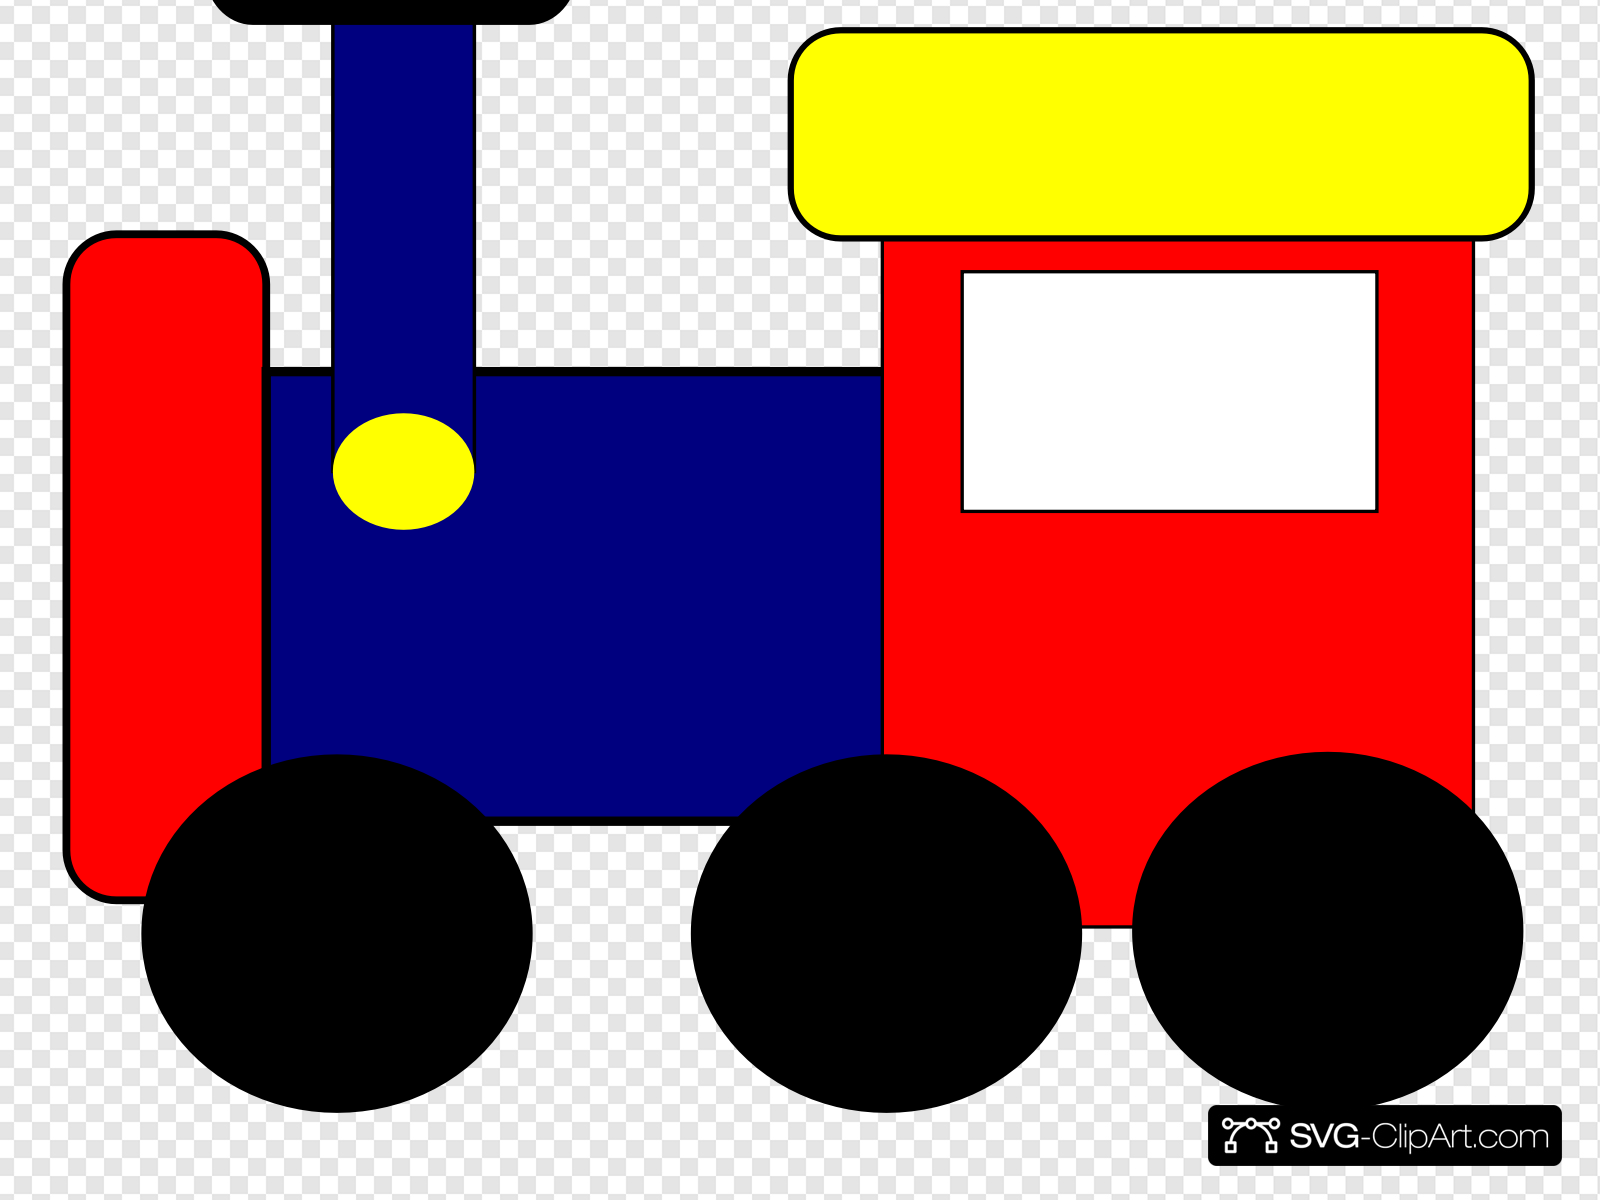 Train engine clip art clipart images gallery for free.